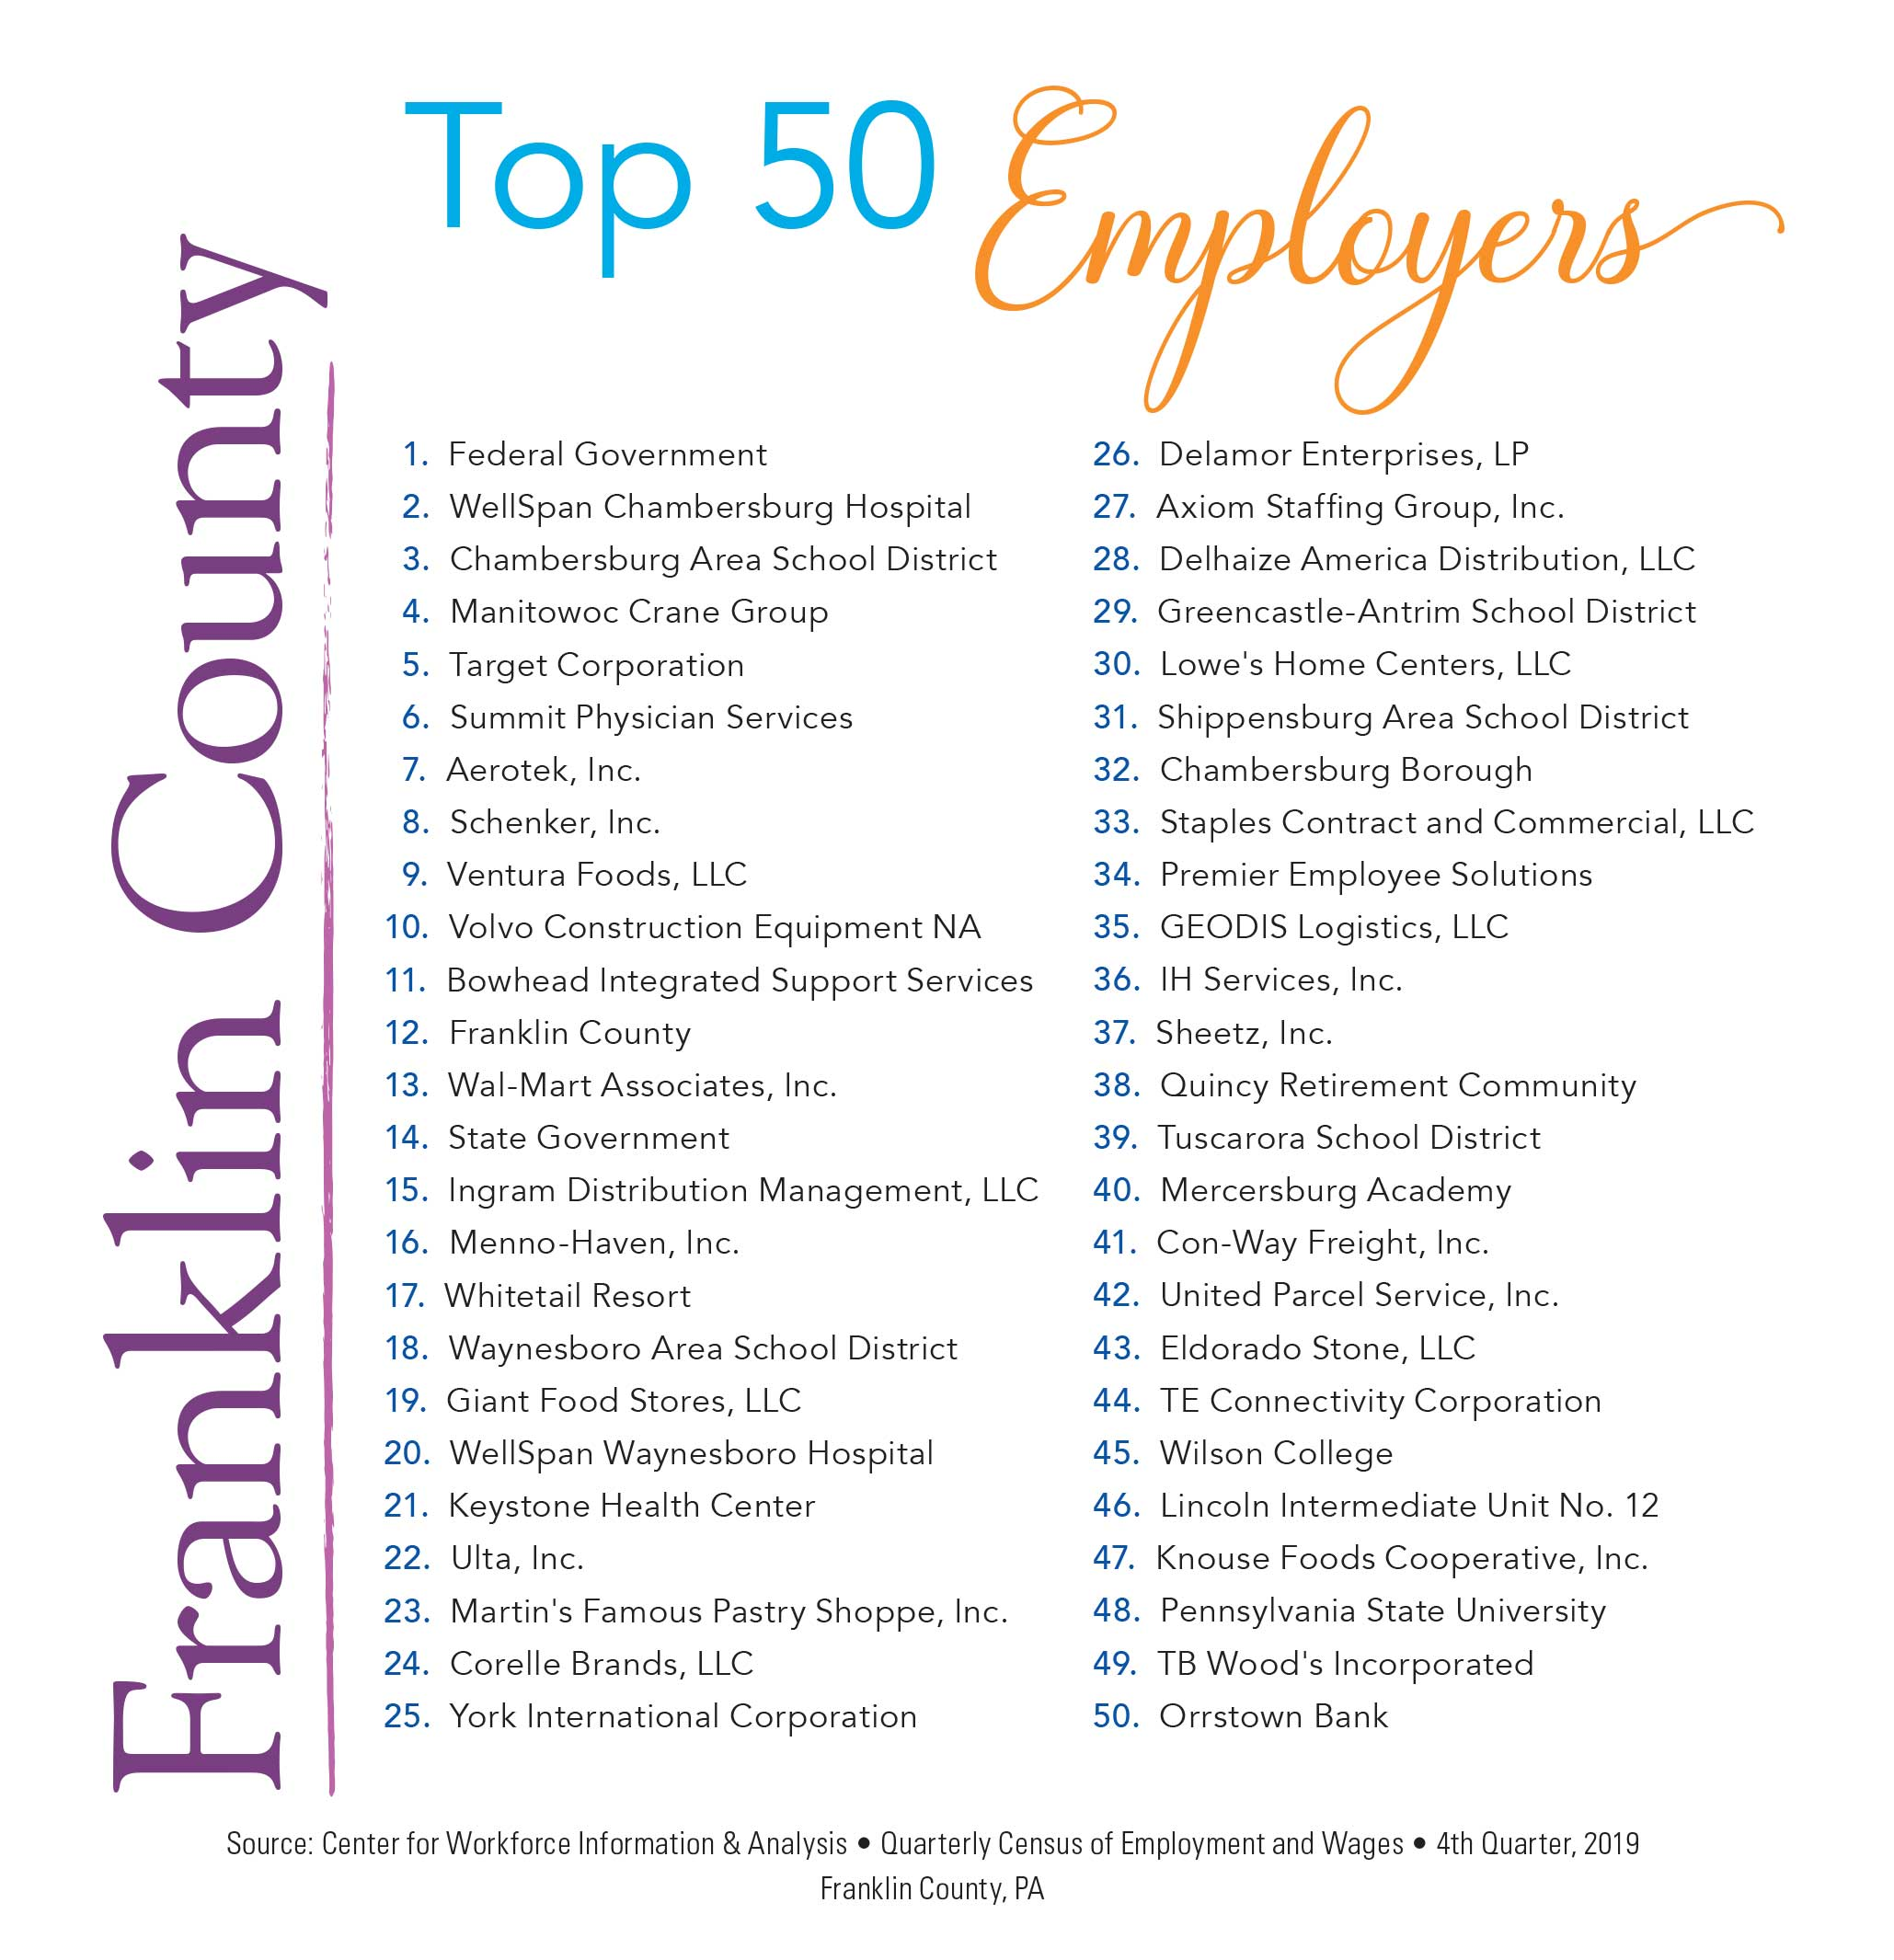 Franklin County Top 50 Employers Chart